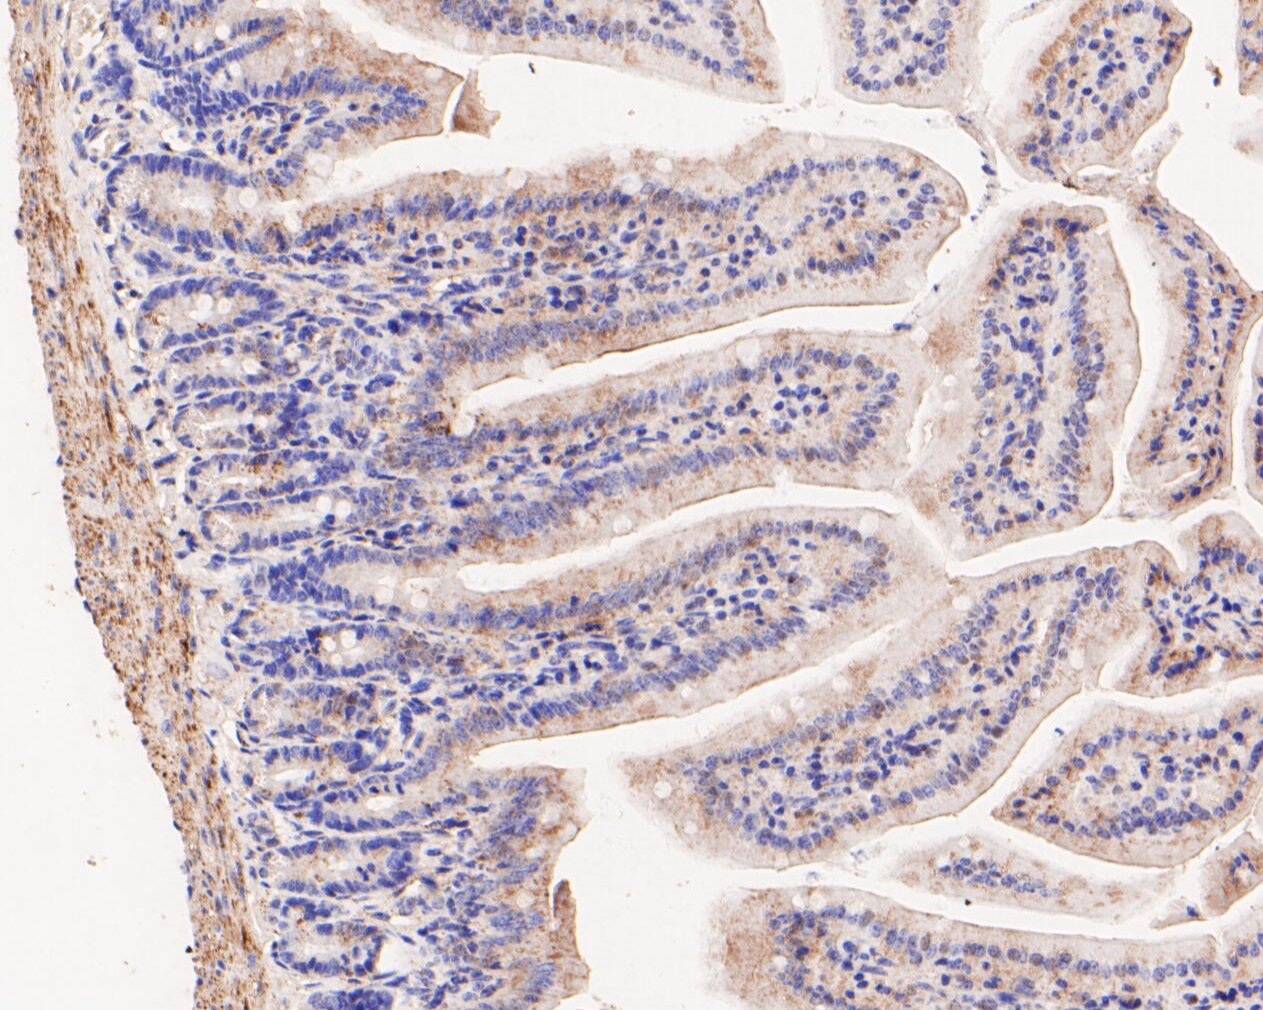 Immunohistochemical analysis of paraffin-embedded mouse colon tissue using anti-FH antibody. The section was pre-treated using heat mediated antigen retrieval with Tris-EDTA buffer (pH 8.0-8.4) for 20 minutes.The tissues were blocked in 5% BSA for 30 minutes at room temperature, washed with ddH2O and PBS, and then probed with the primary antibody (ER1902-01, 1/50) for 30 minutes at room temperature. The detection was performed using an HRP conjugated compact polymer system. DAB was used as the chromogen. Tissues were counterstained with hematoxylin and mounted with DPX.